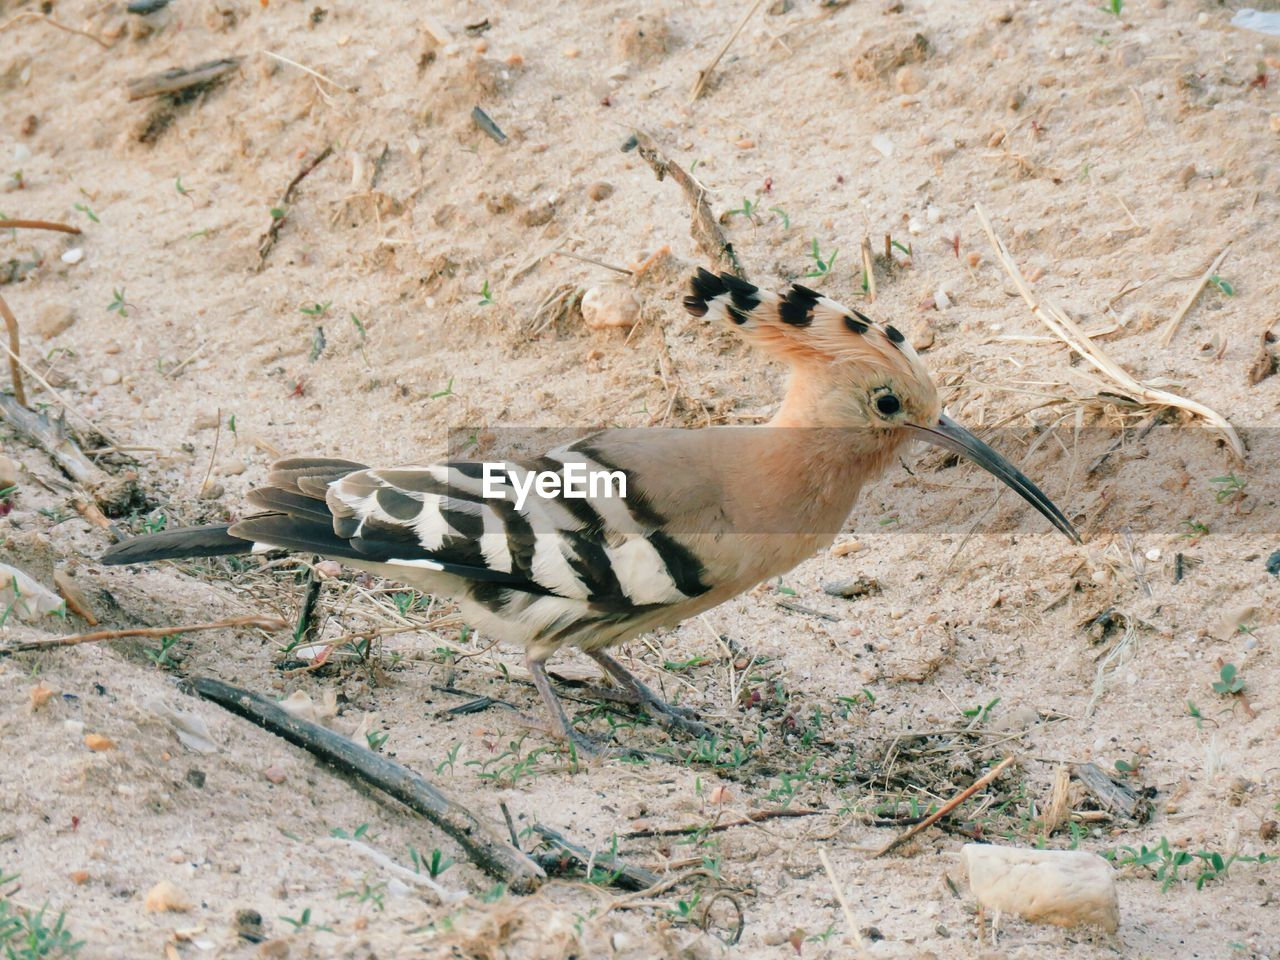 animal wildlife, animals in the wild, one animal, vertebrate, no people, land, nature, day, bird, field, mammal, outdoors, striped, rock - object, rock, plant, high angle view, herbivorous, arid climate, climate